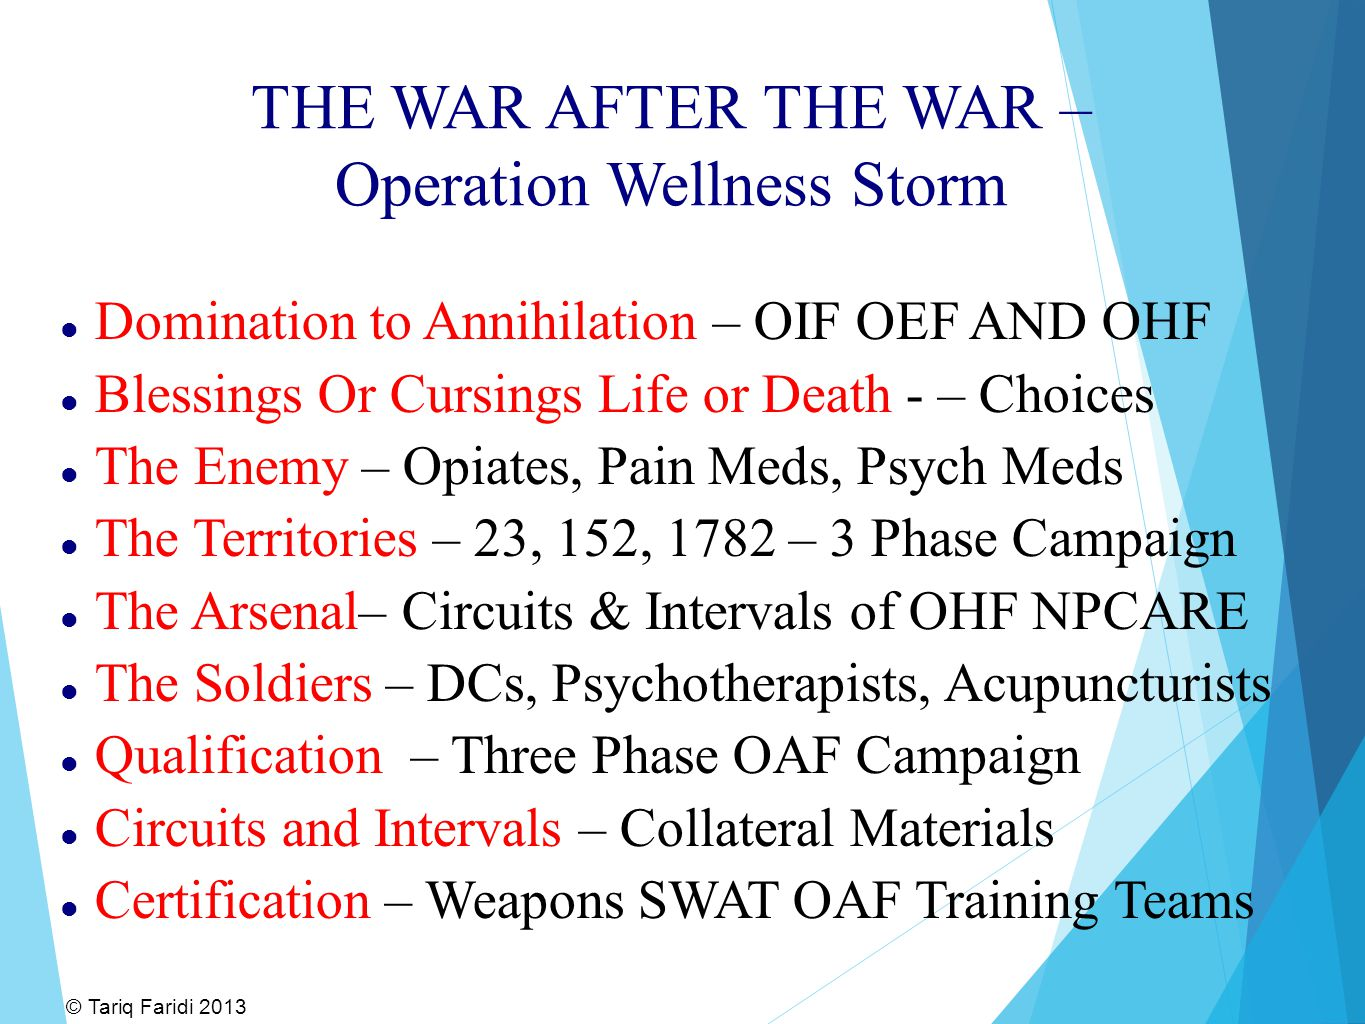 THE WAR AFTER THE WAR – Operation Wellness Storm Domination to Annihilation – OIF OEF AND OHF Blessings Or Cursings Life or Death - – Choices The Enemy – Opiates, Pain Meds, Psych Meds The Territories – 23, 152, 1782 – 3 Phase Campaign The Arsenal– Circuits & Intervals of OHF NPCARE The Soldiers – DCs, Psychotherapists, Acupuncturists Qualification – Three Phase OAF Campaign Circuits and Intervals – Collateral Materials Certification – Weapons SWAT OAF Training Teams © Tariq Faridi 2013